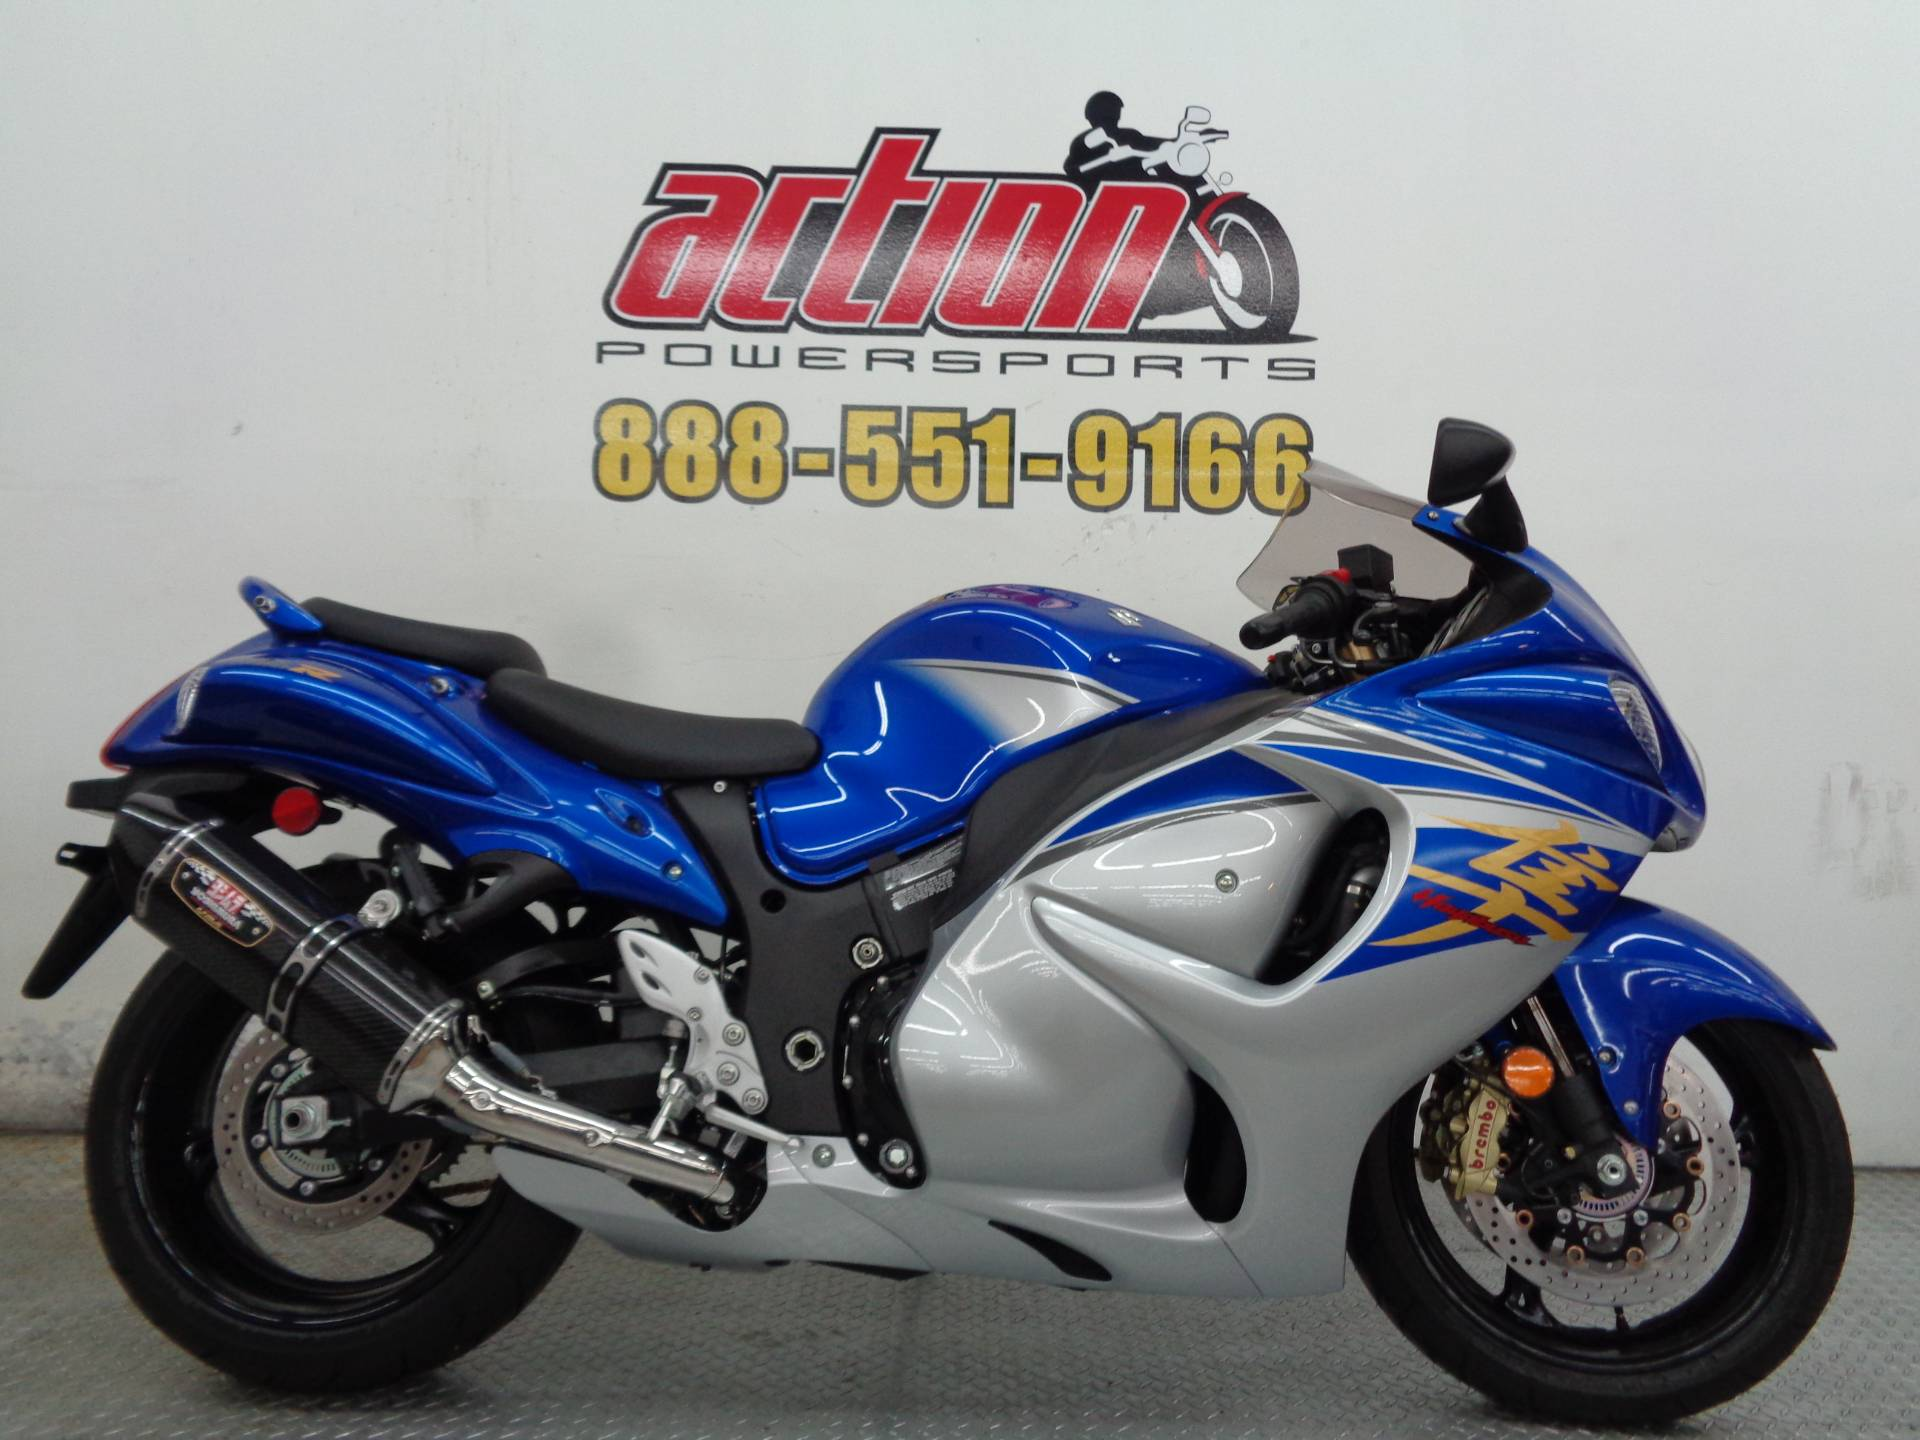 2015 Suzuki Hayabusa for sale 4971